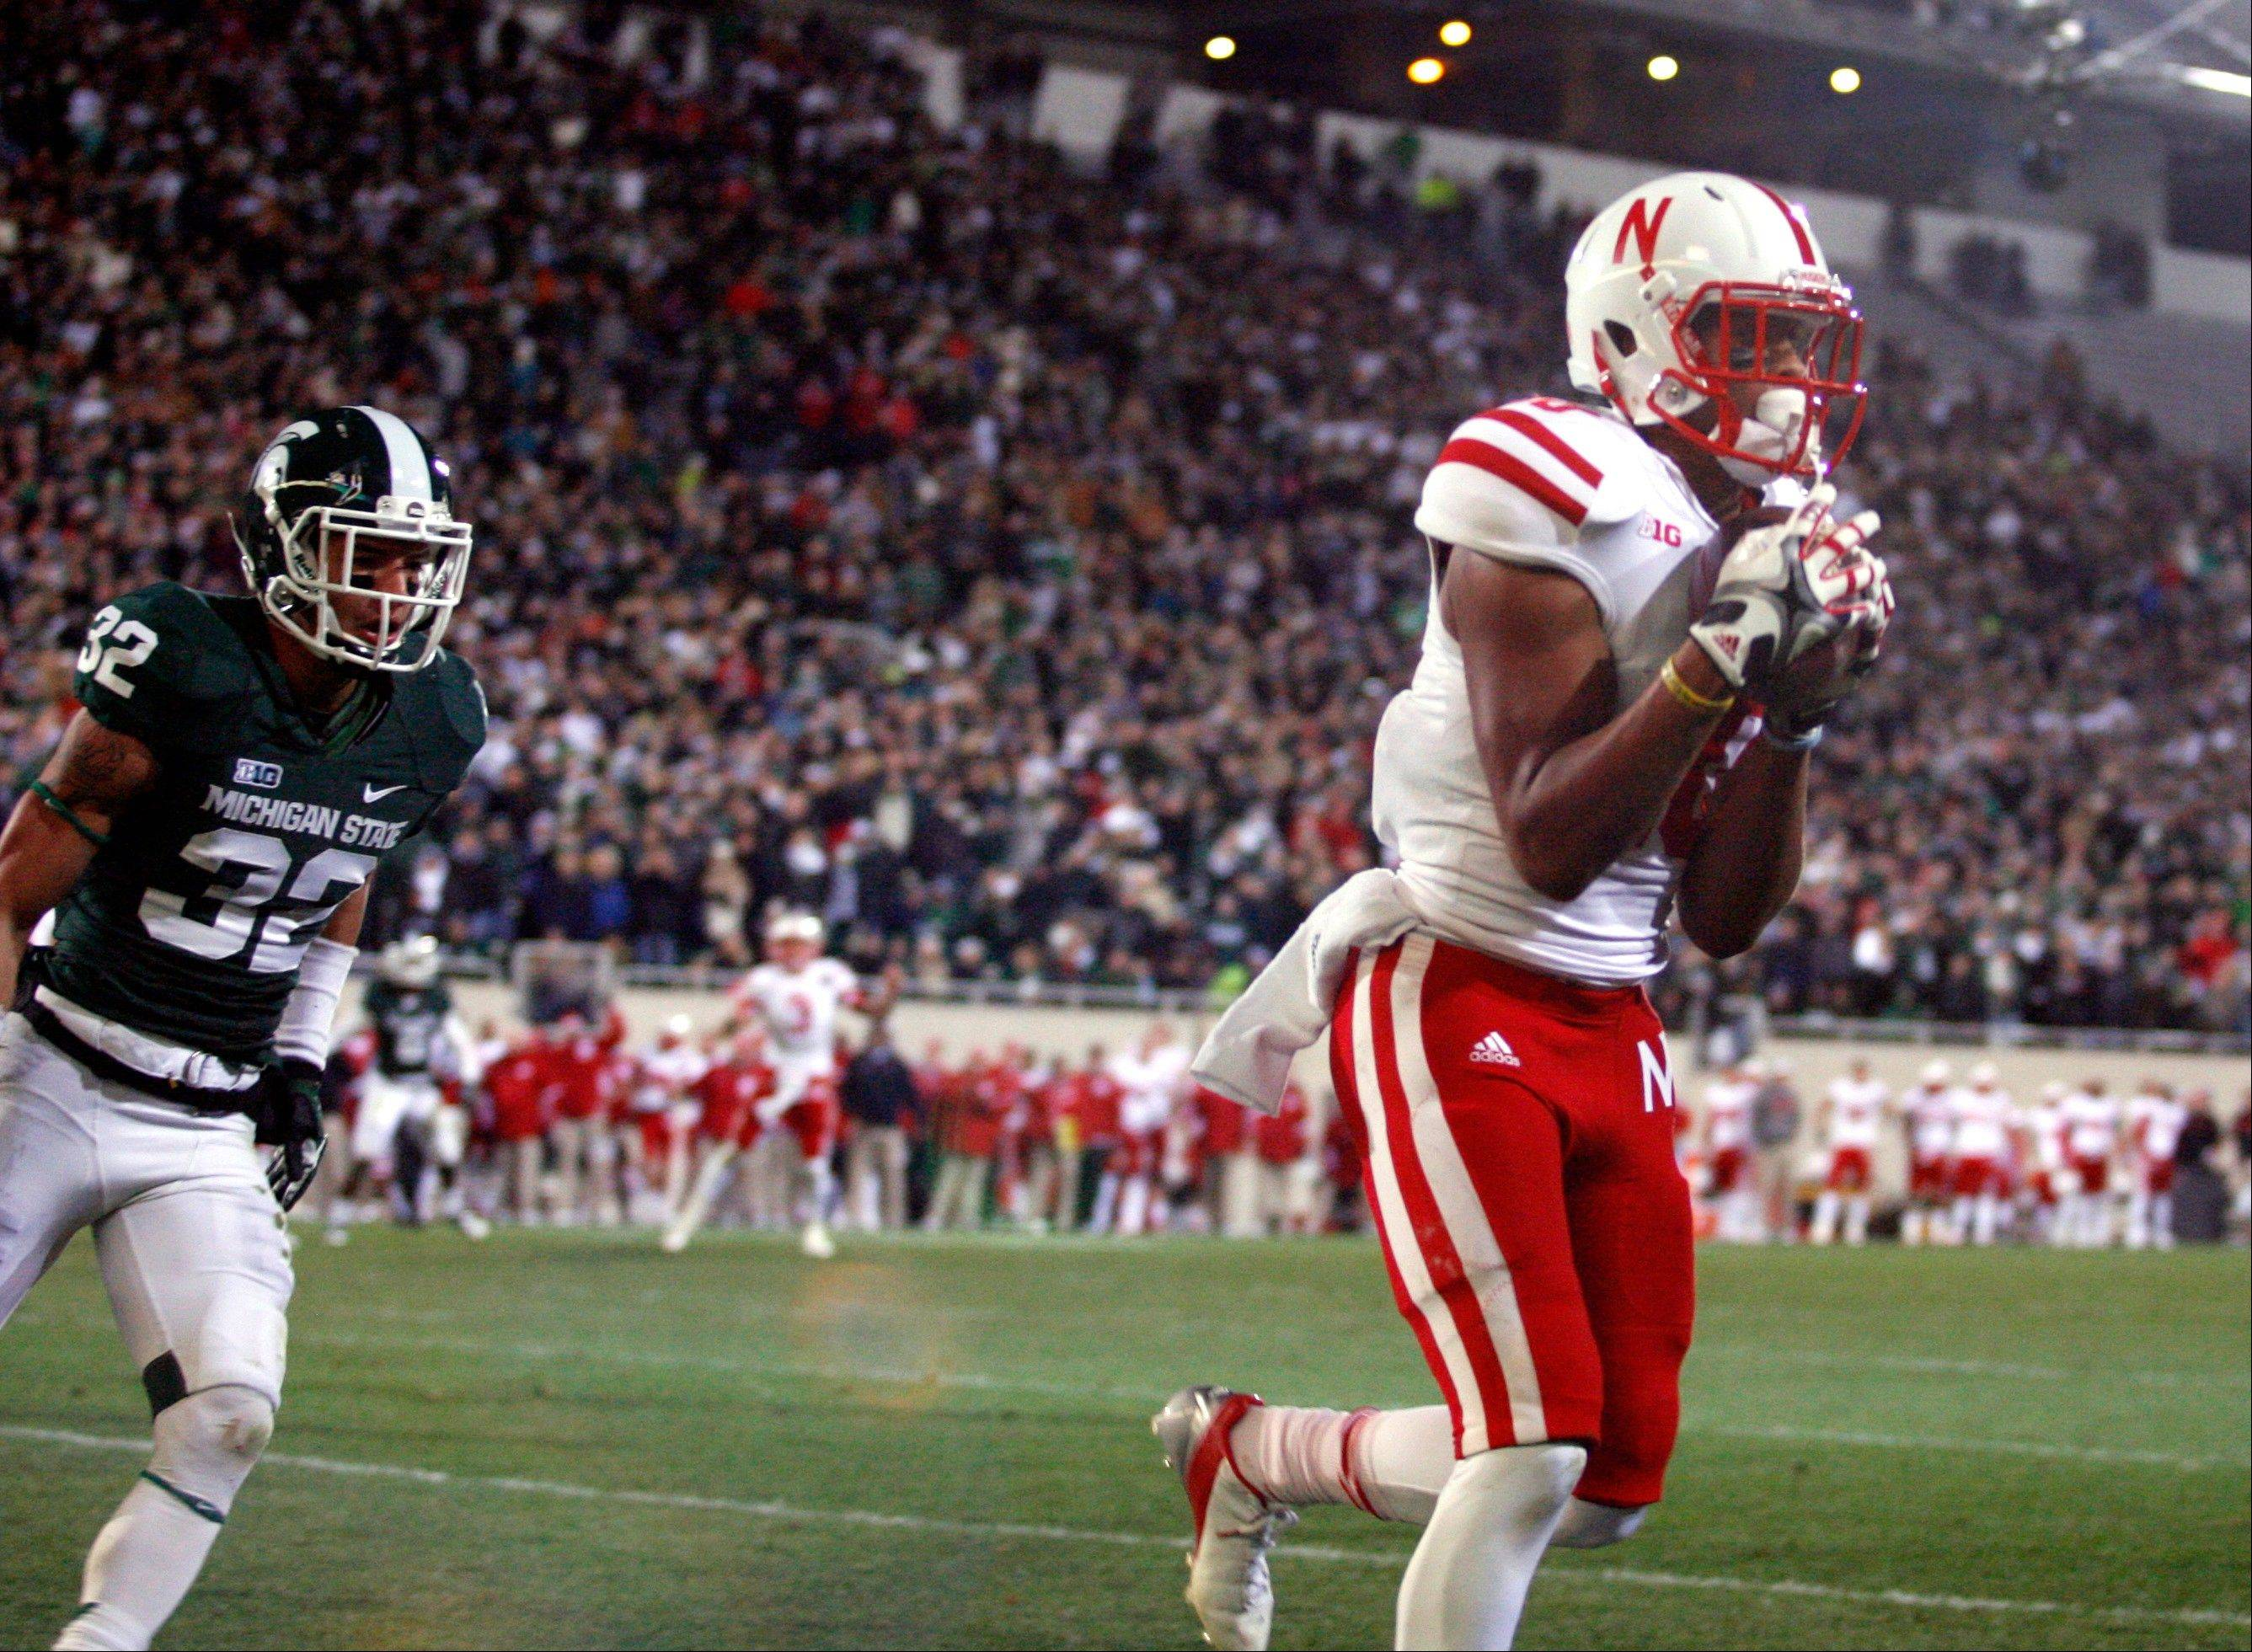 Nebraska's Jamal Turner, right, catches the game-winning touchdown pass against Michigan State's Mitchell White with seconds remaining in the fourth quarter Saturday in East Lansing, Mich. Nebraska won 28-24.